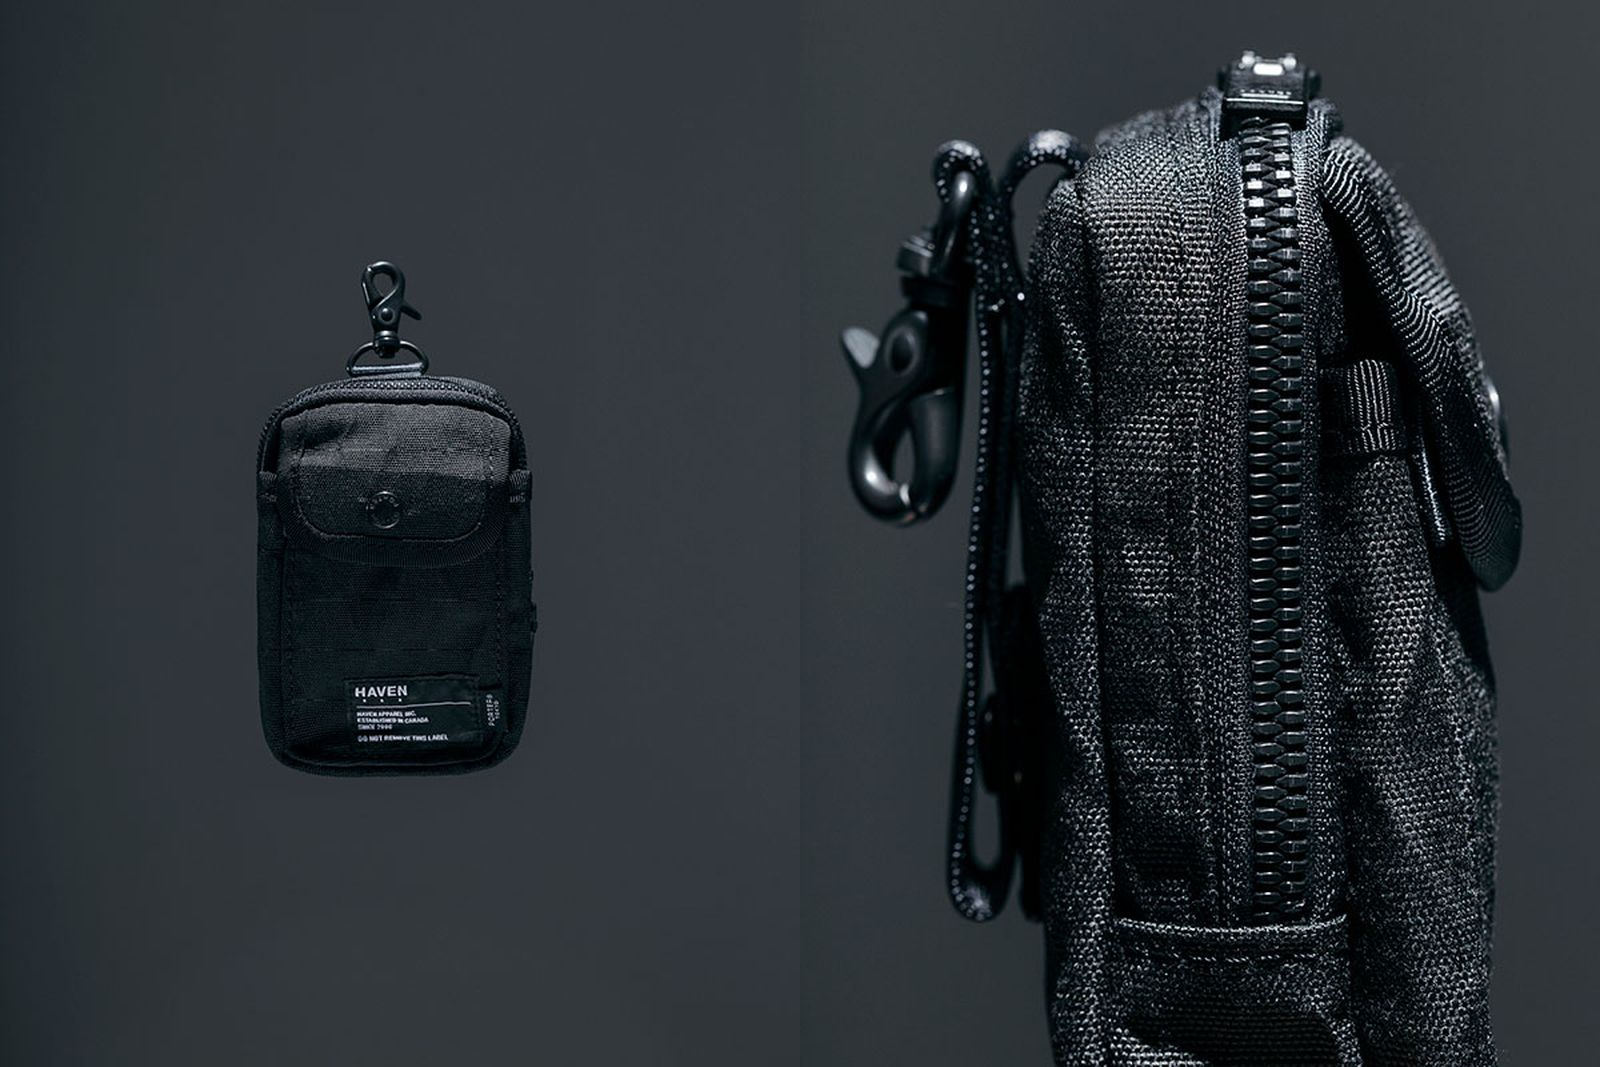 haven x porter bags on grey background